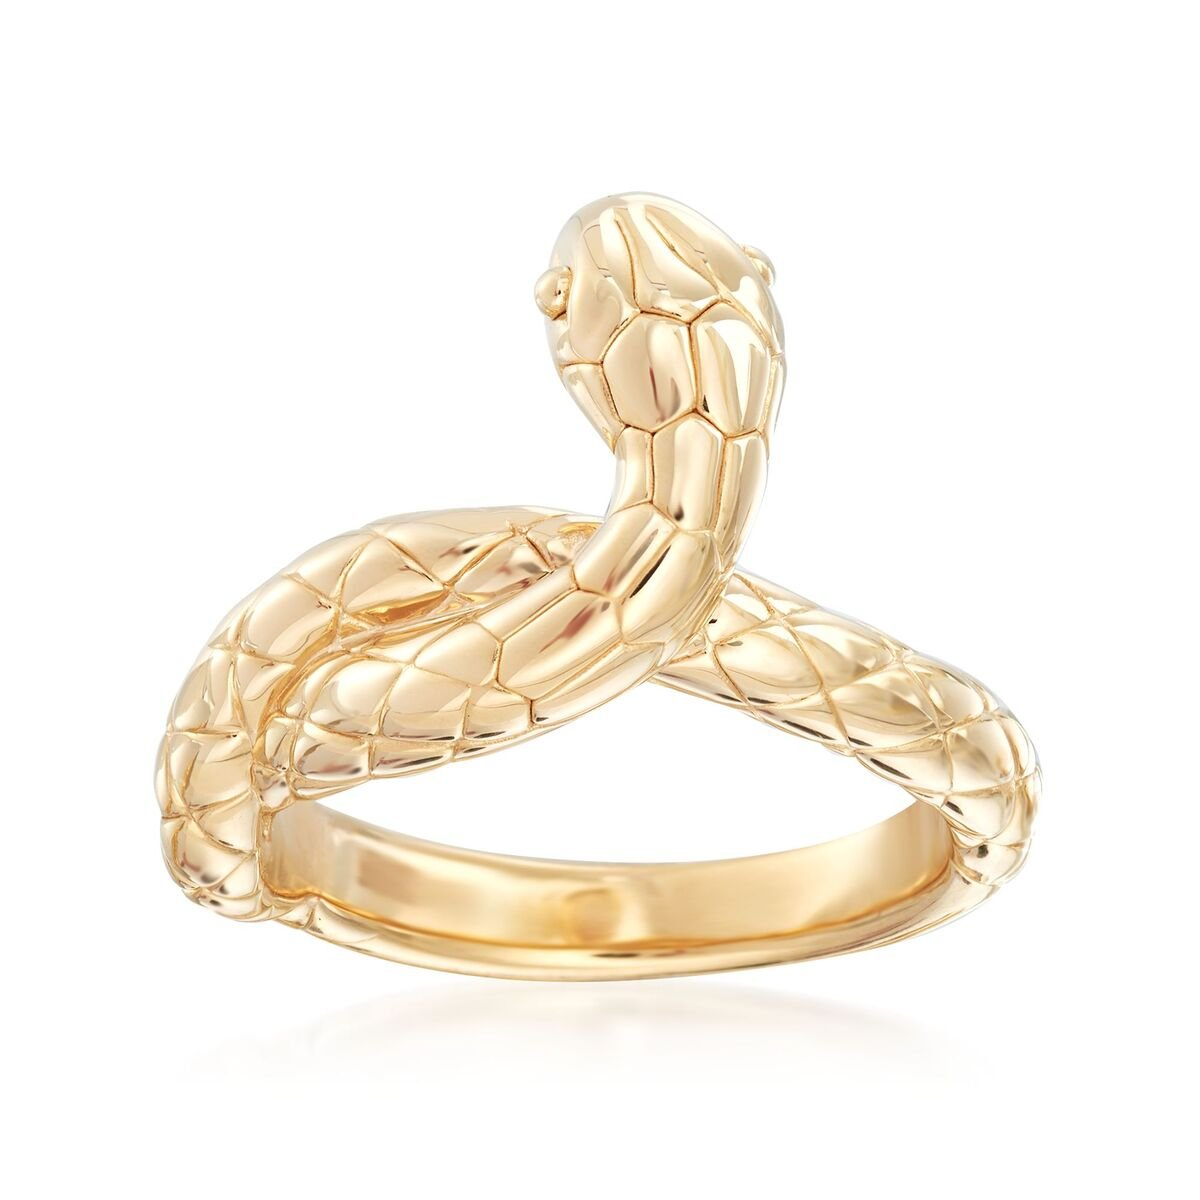 14kt Yellow Gold Snake Ring